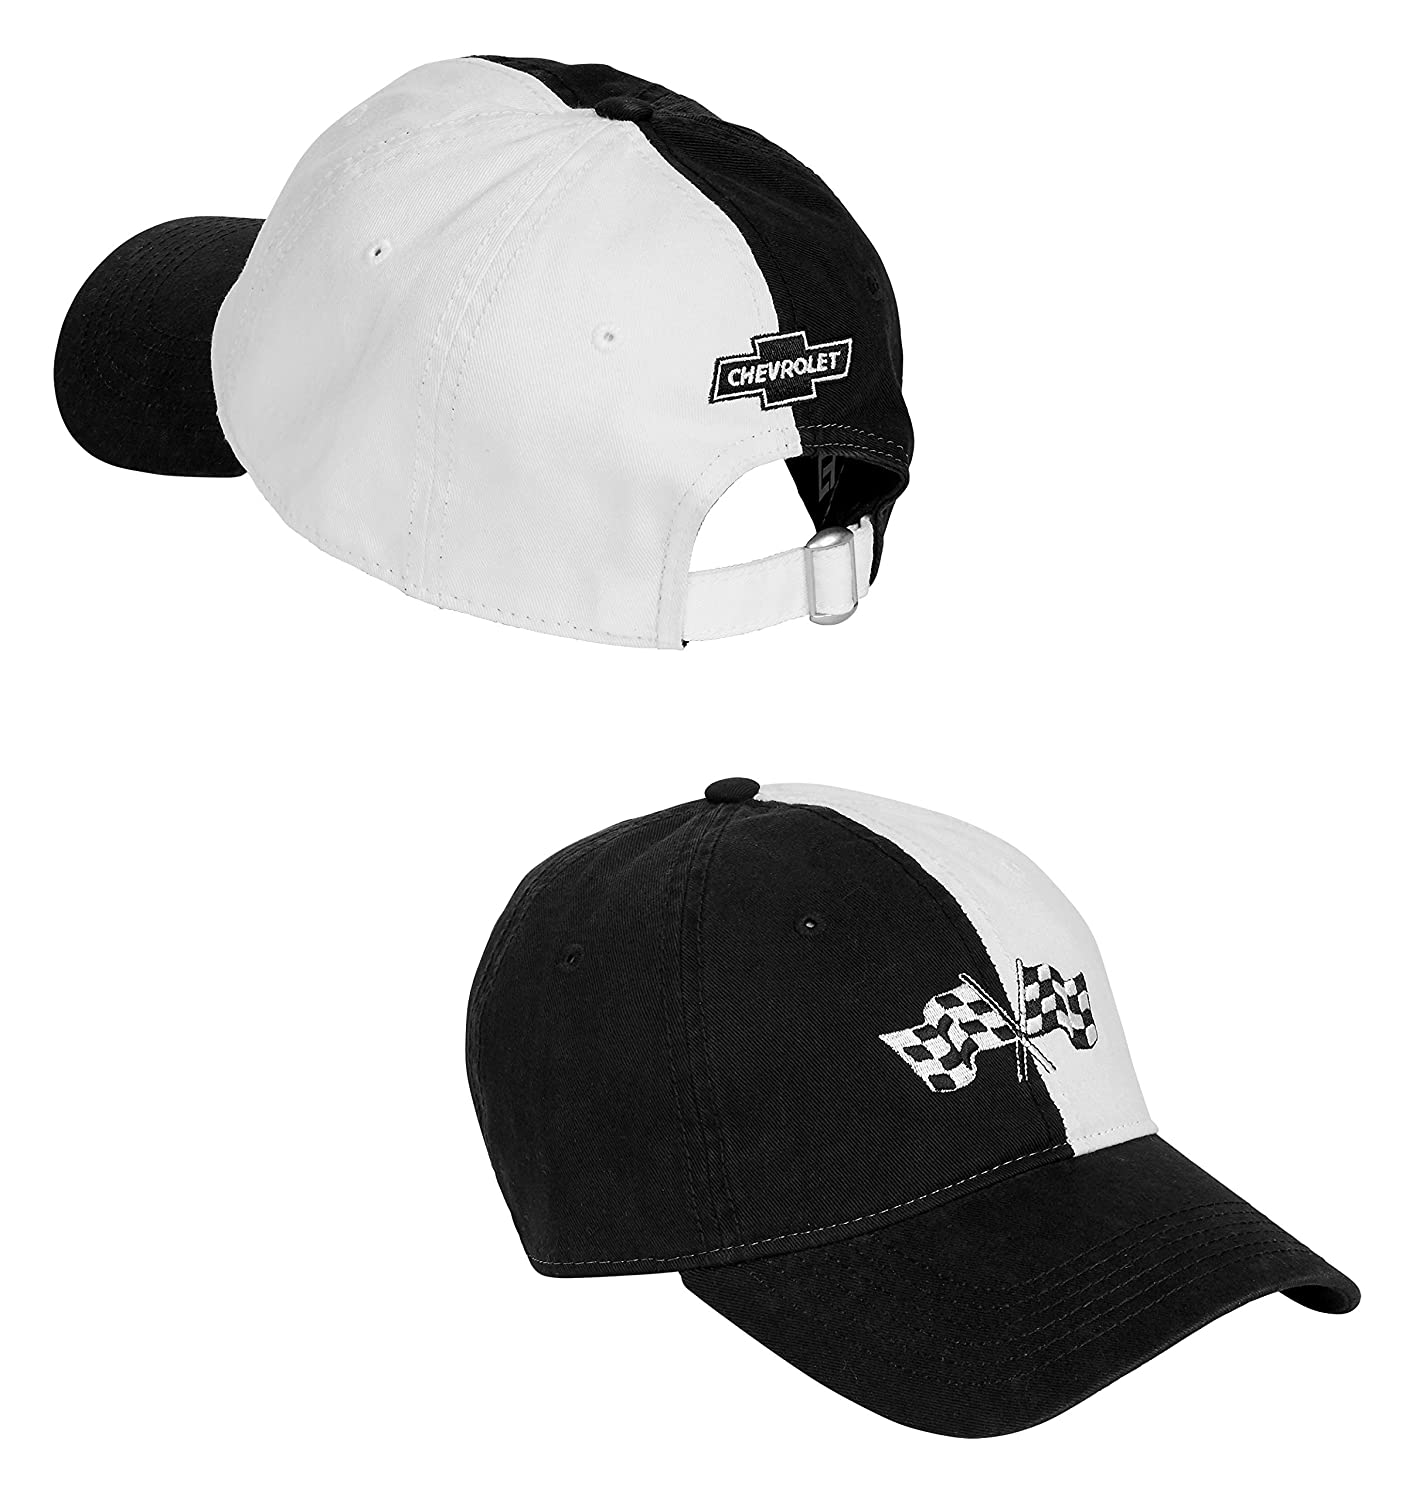 Chevrolet Racing Hat One Size